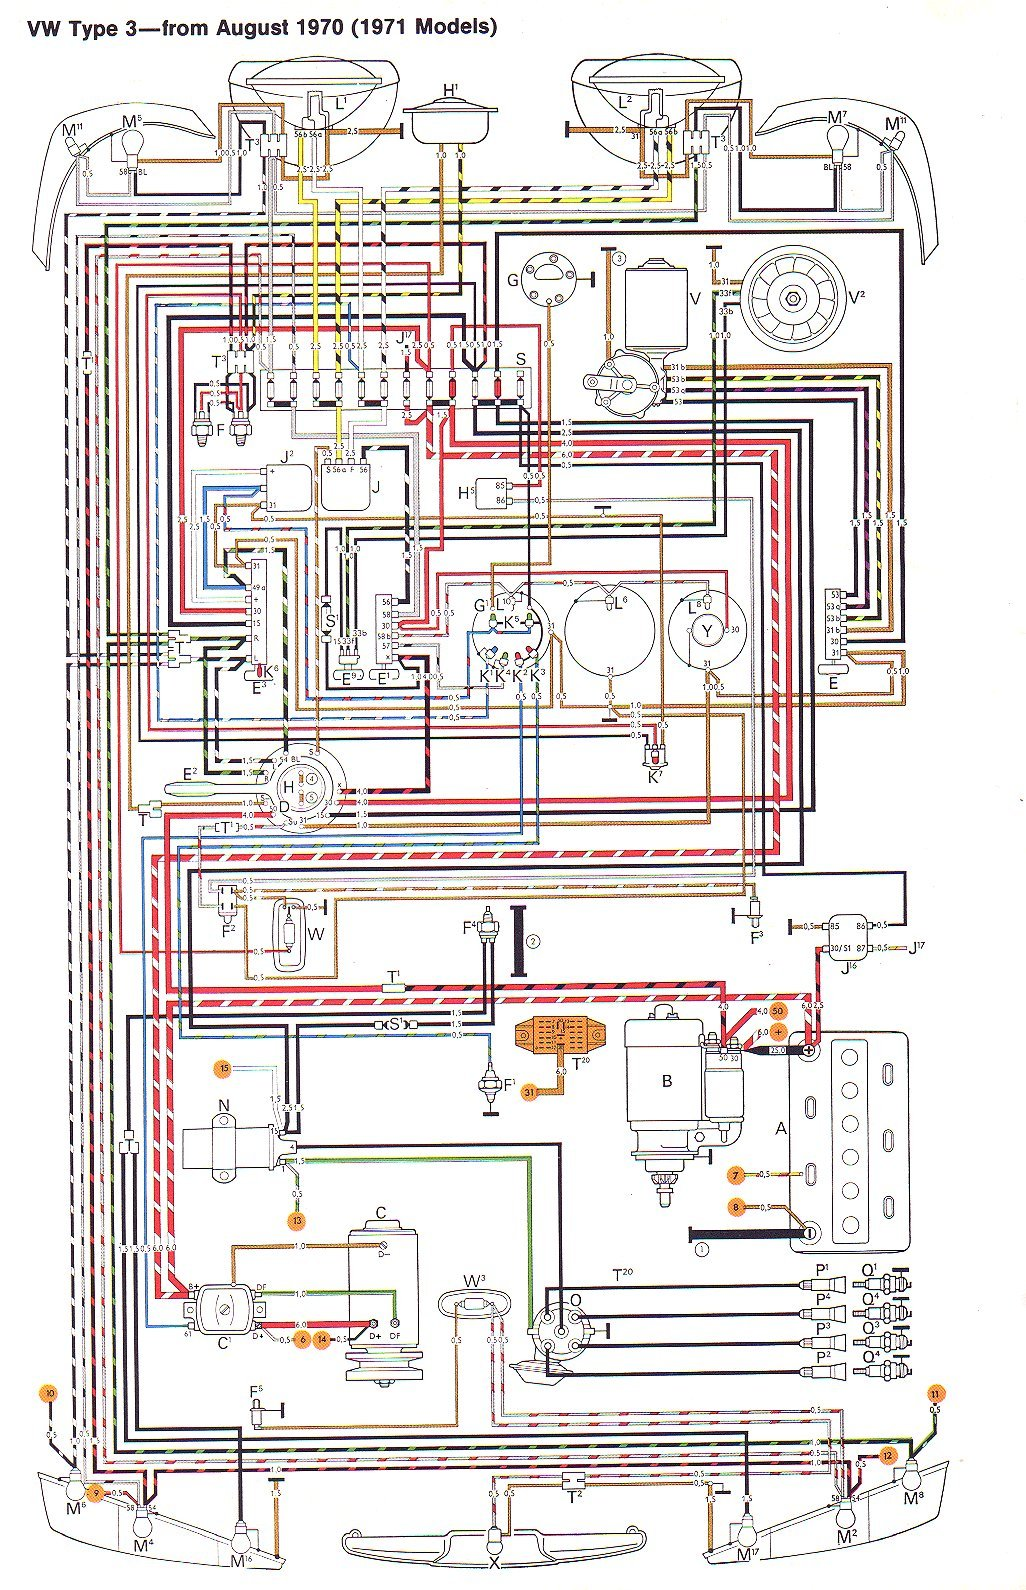 volkswagen wiring diagram vw type 3 wiring diagrams